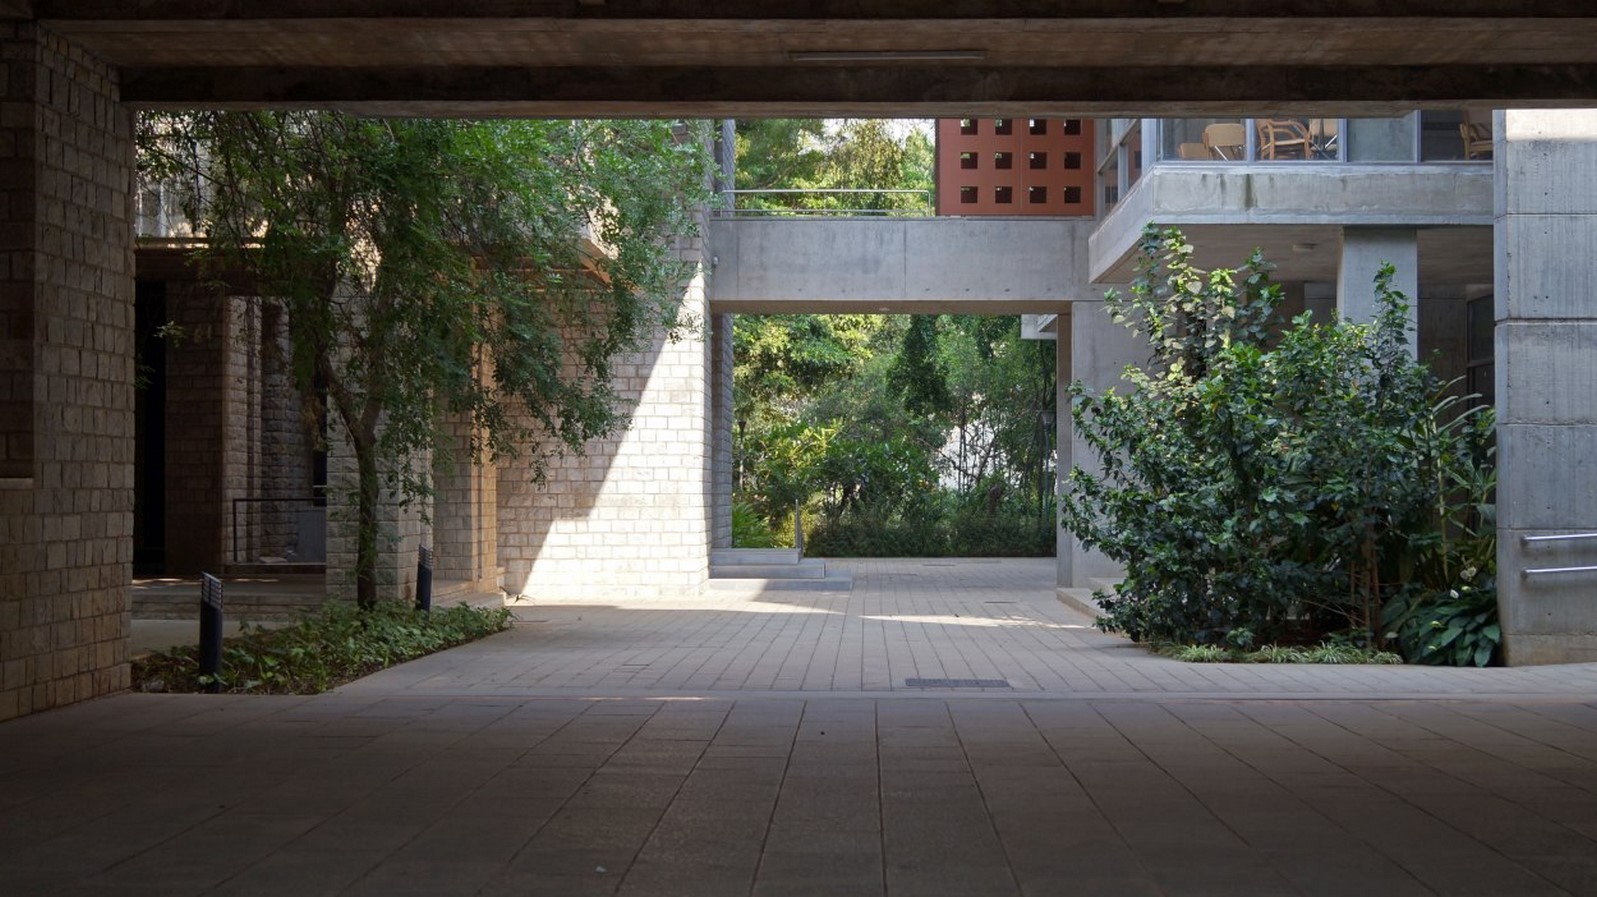 IIM, Bangalore by BV Doshi: perfect sense of scale, proportion and light - Sheet5